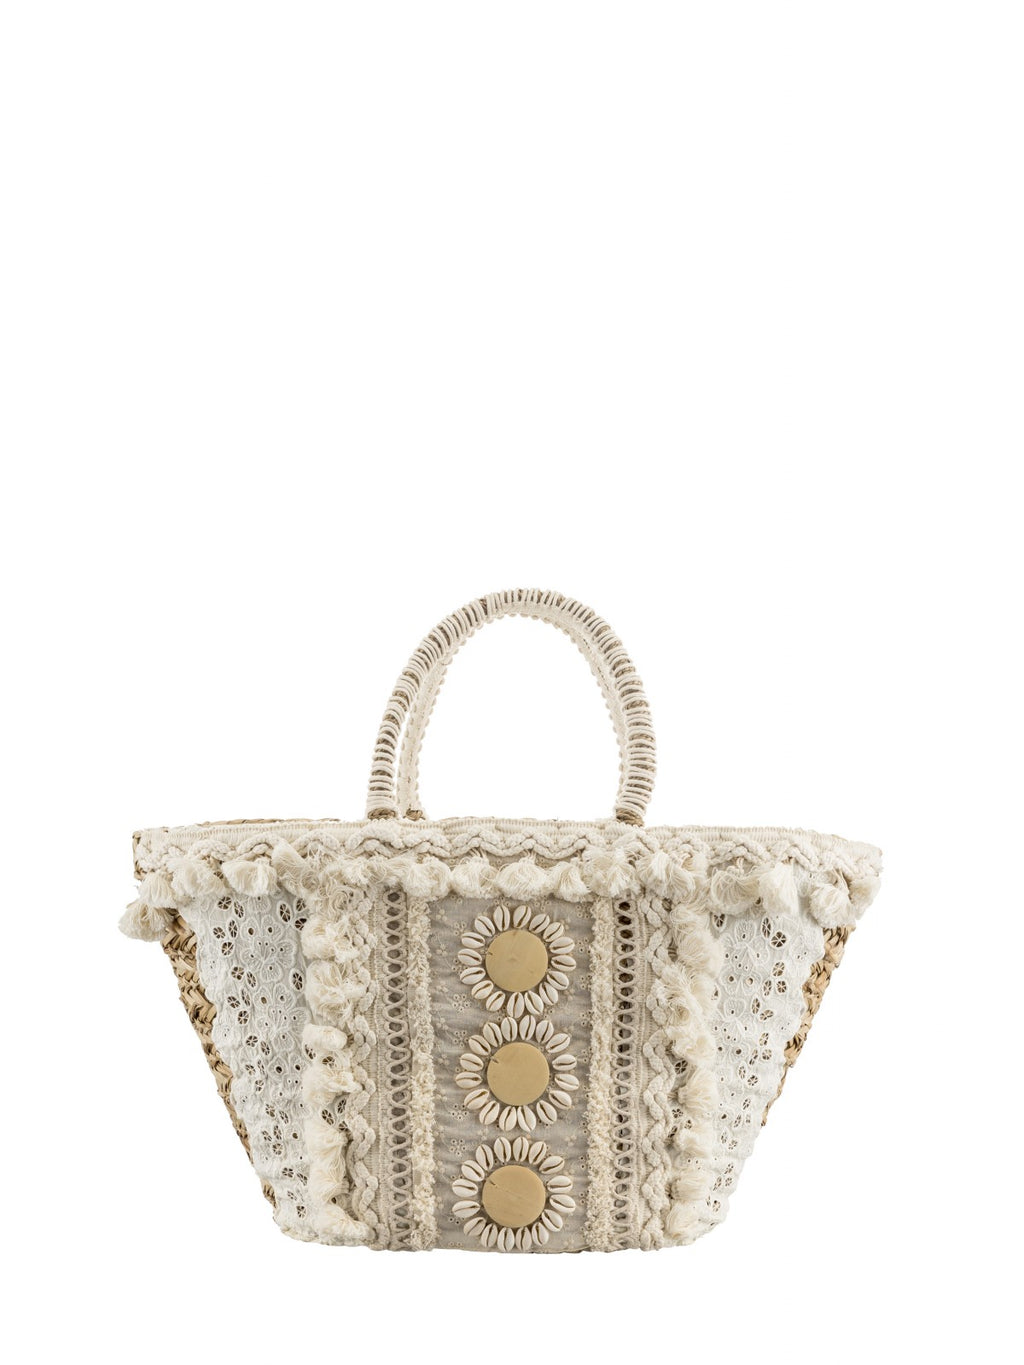 Cream Straw bag adorned with Shells & Tassels